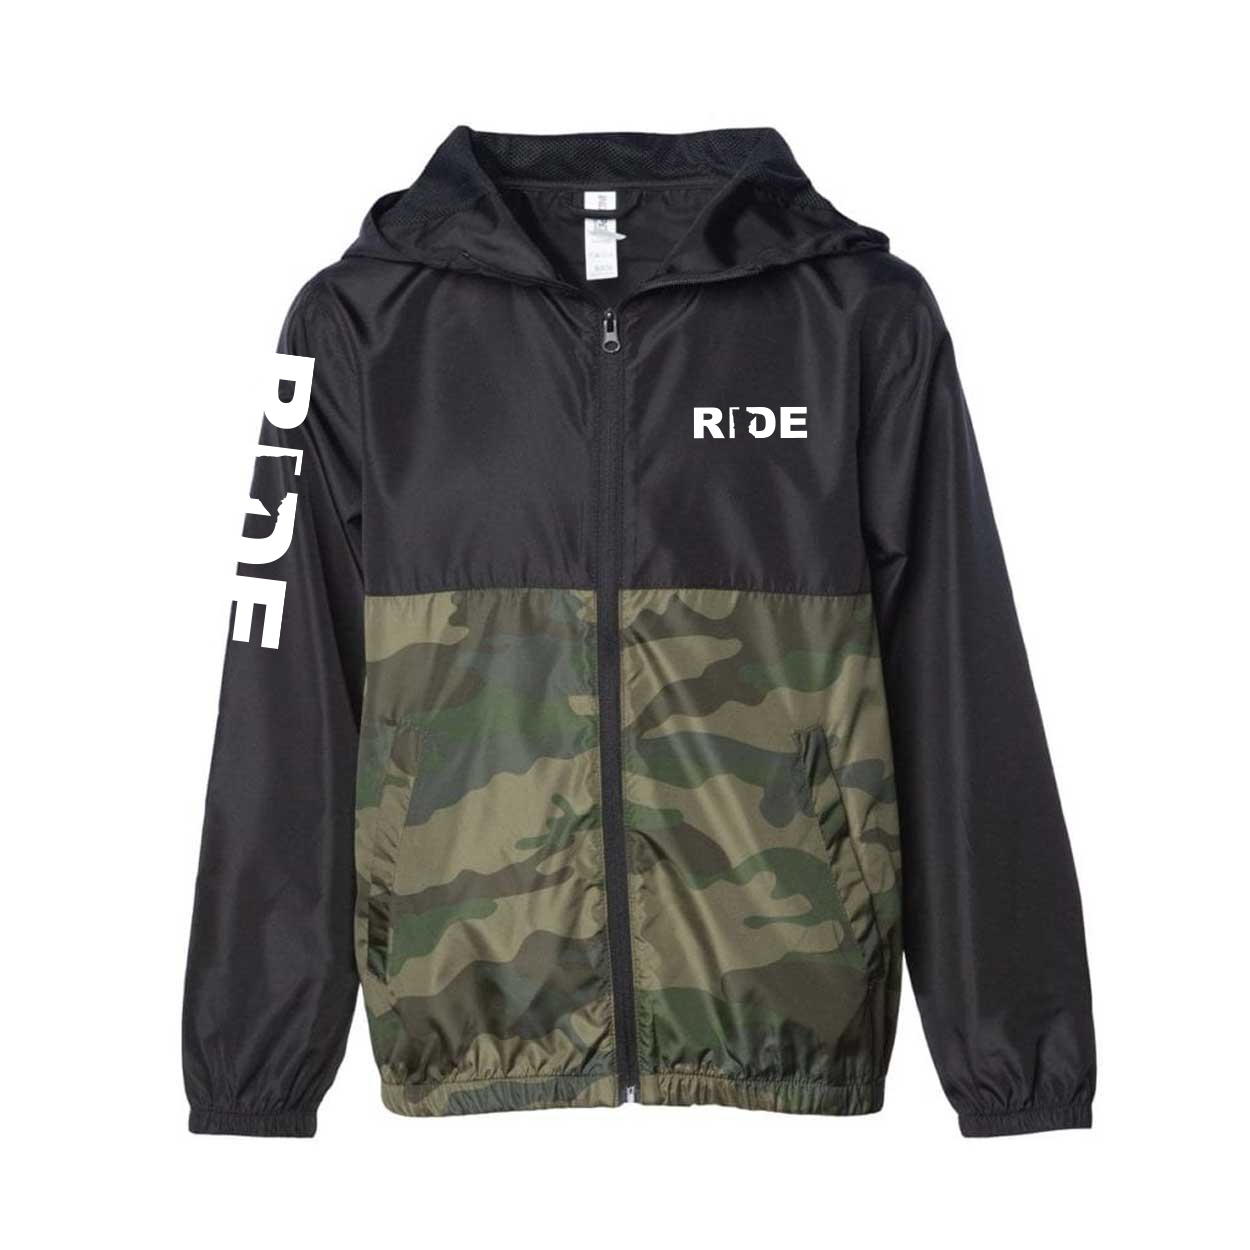 Ride Minnesota Classic Youth Lightweight Windbreaker Black/Forest Camo (White Logo)